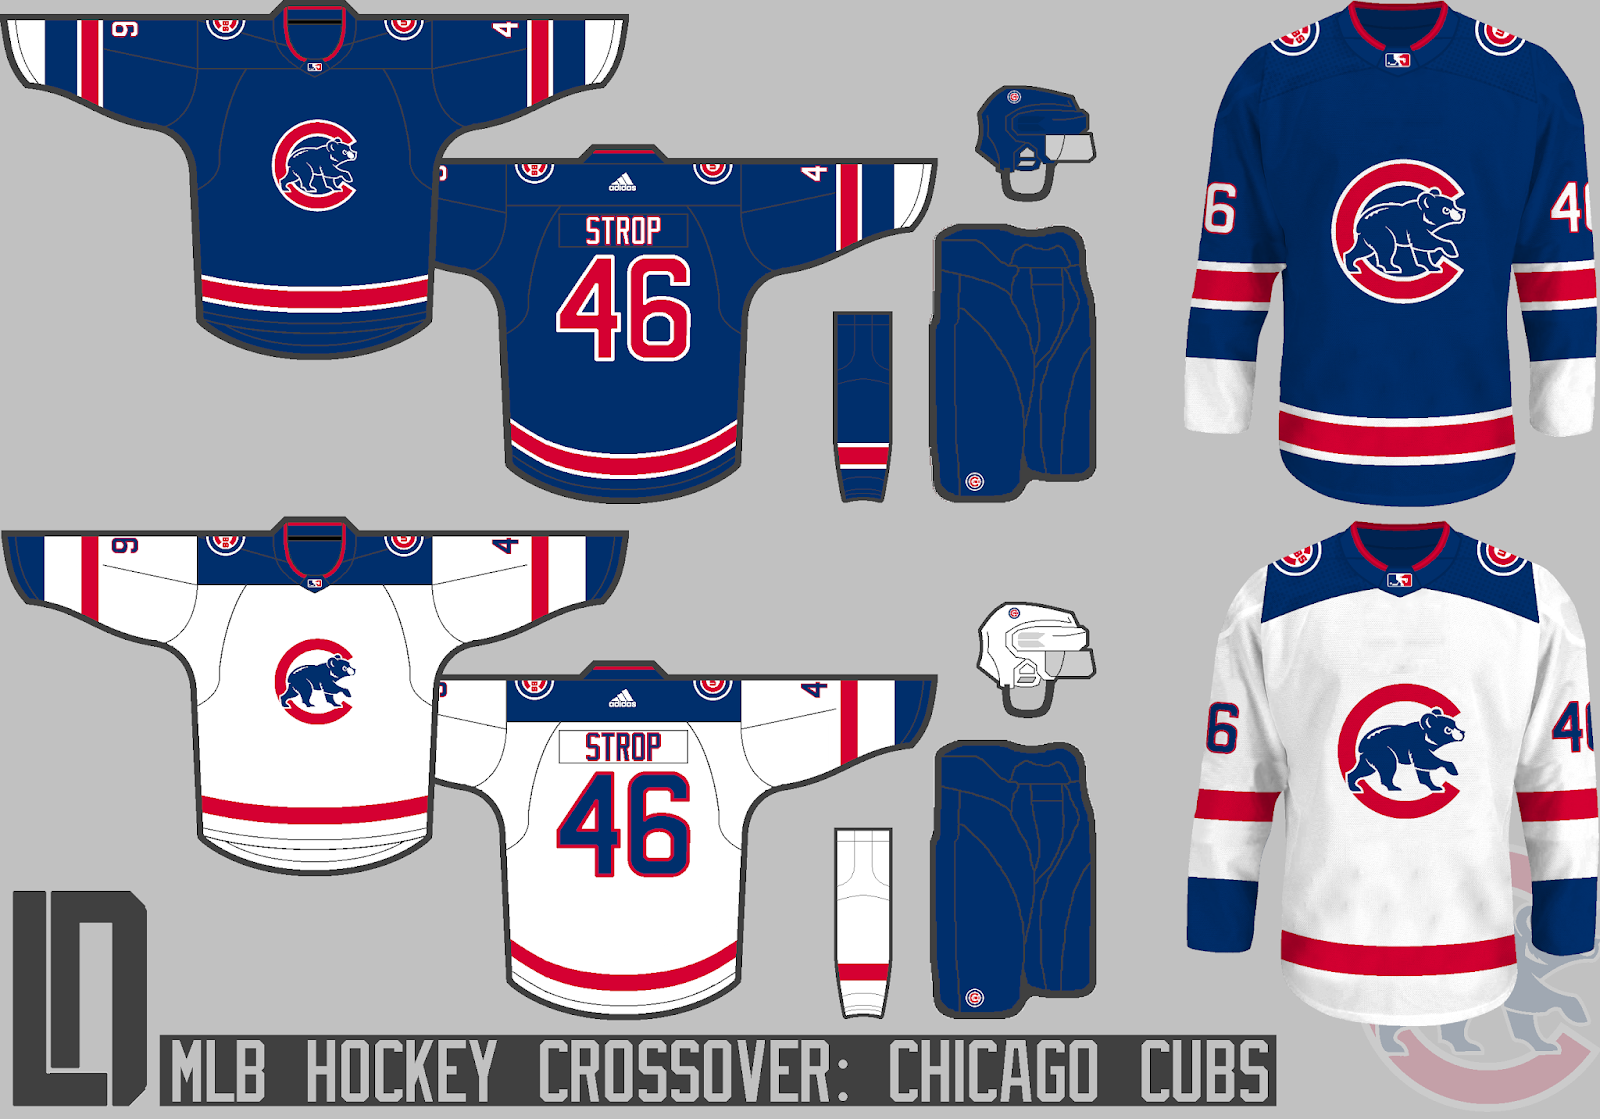 Chicago+Cubs+Concept.png